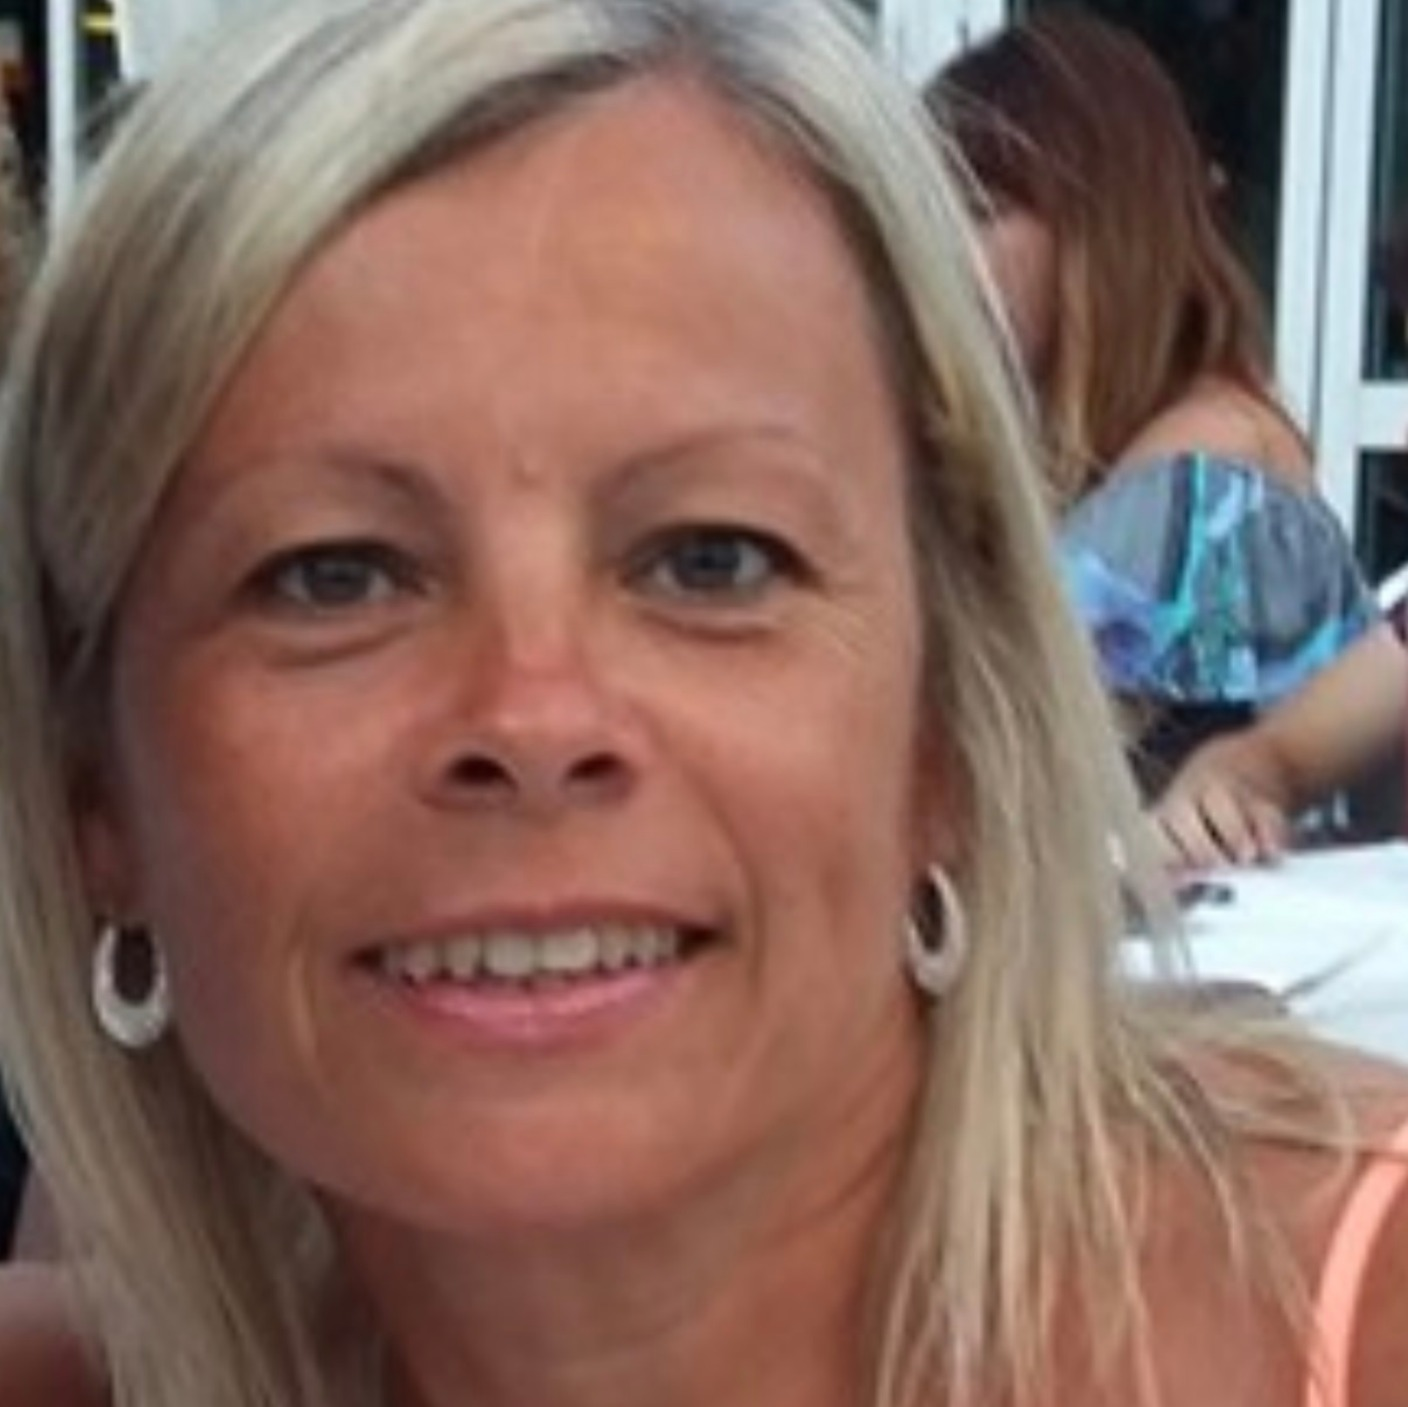 A Man Who Stabbed A Mother To Death Has Been Jailed For